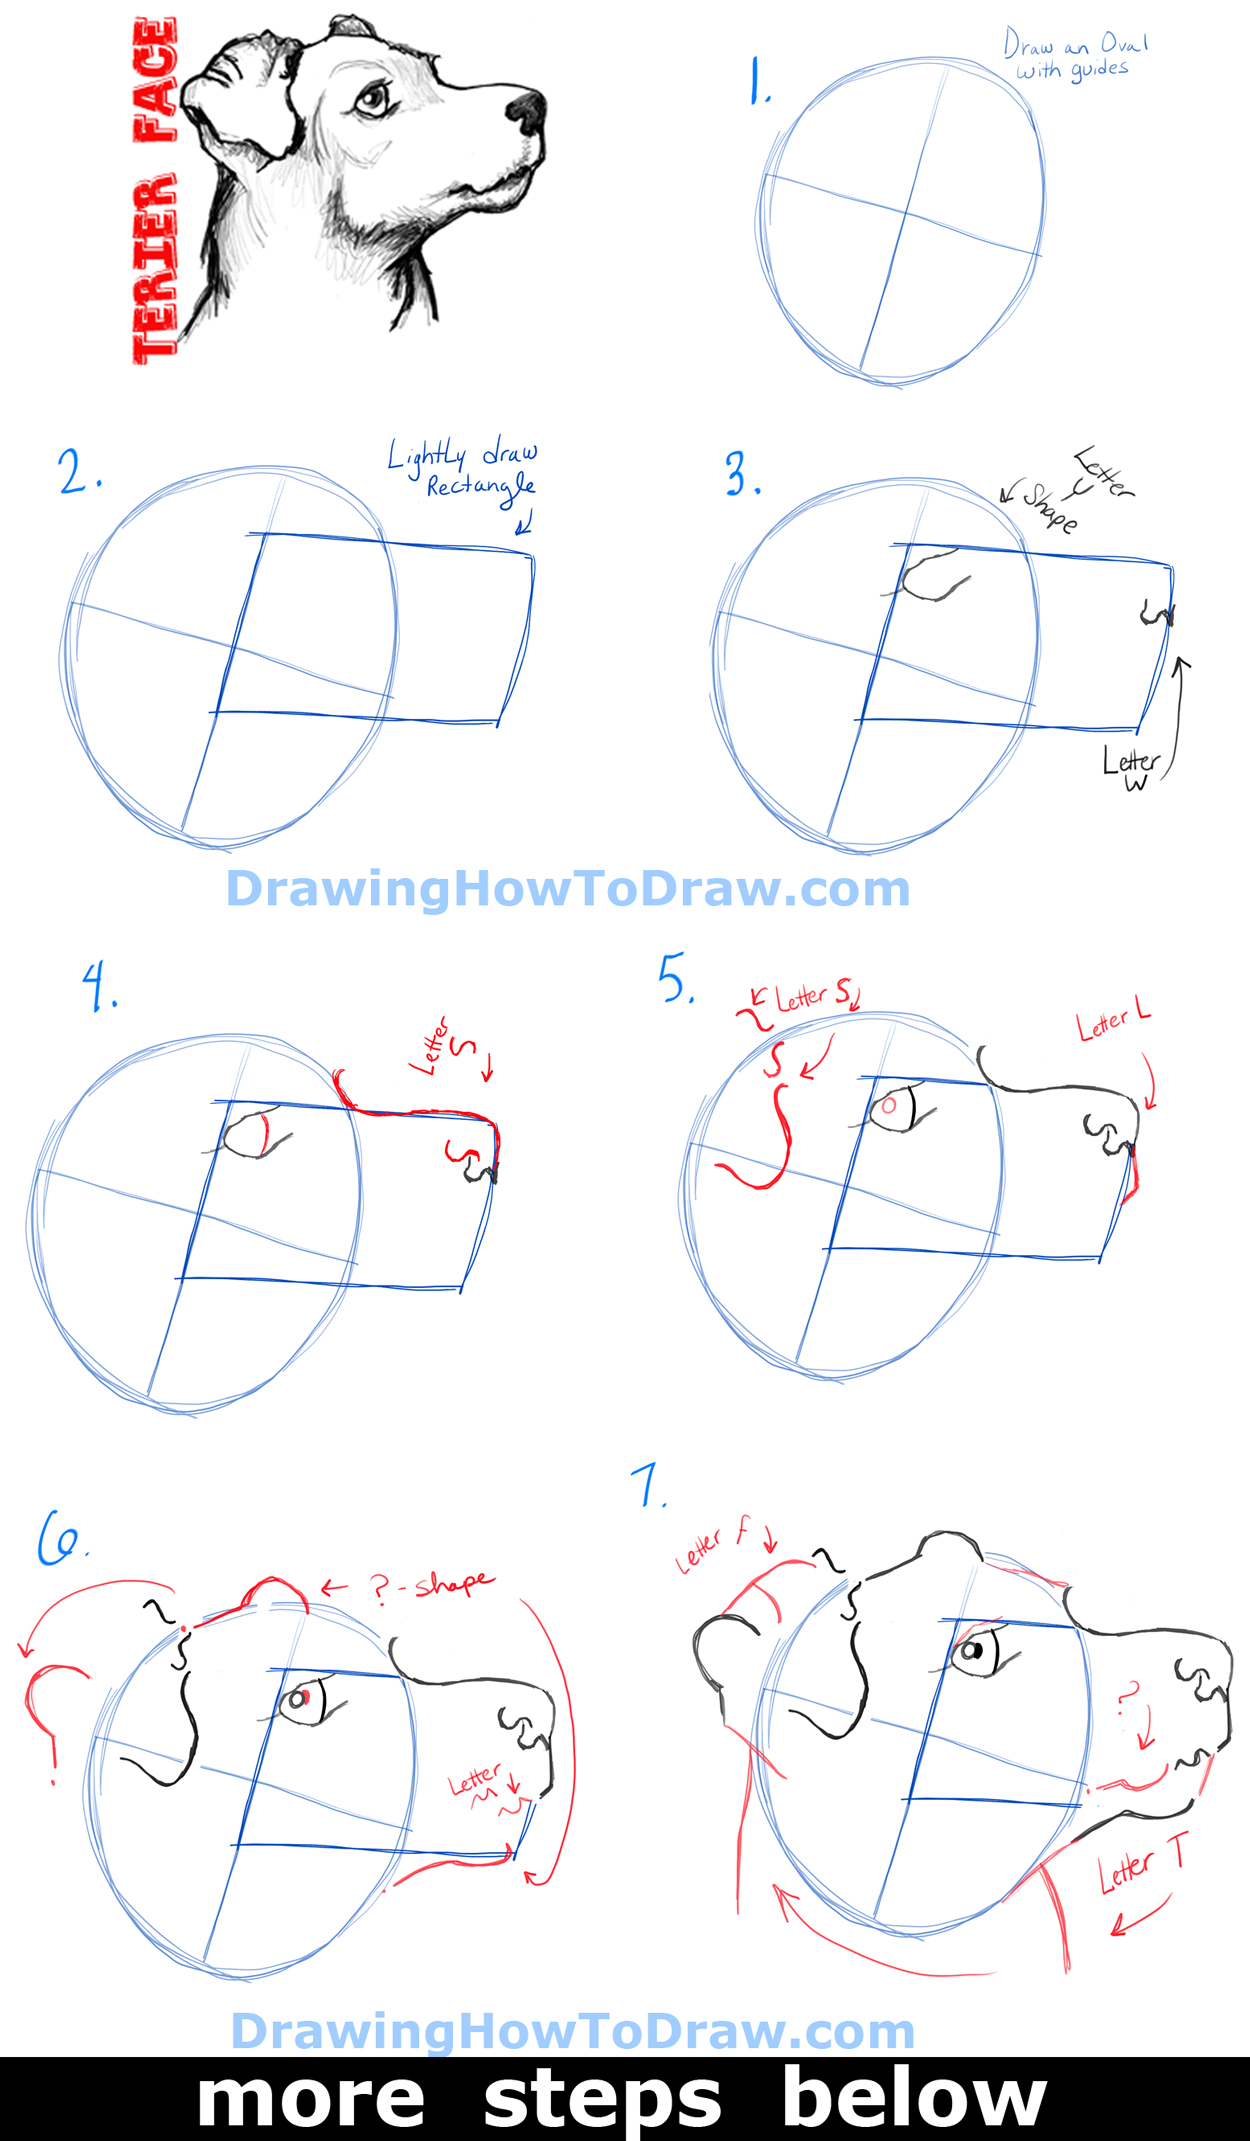 How to Draw a Terrier's Face / Dog's Face with Easy Steps